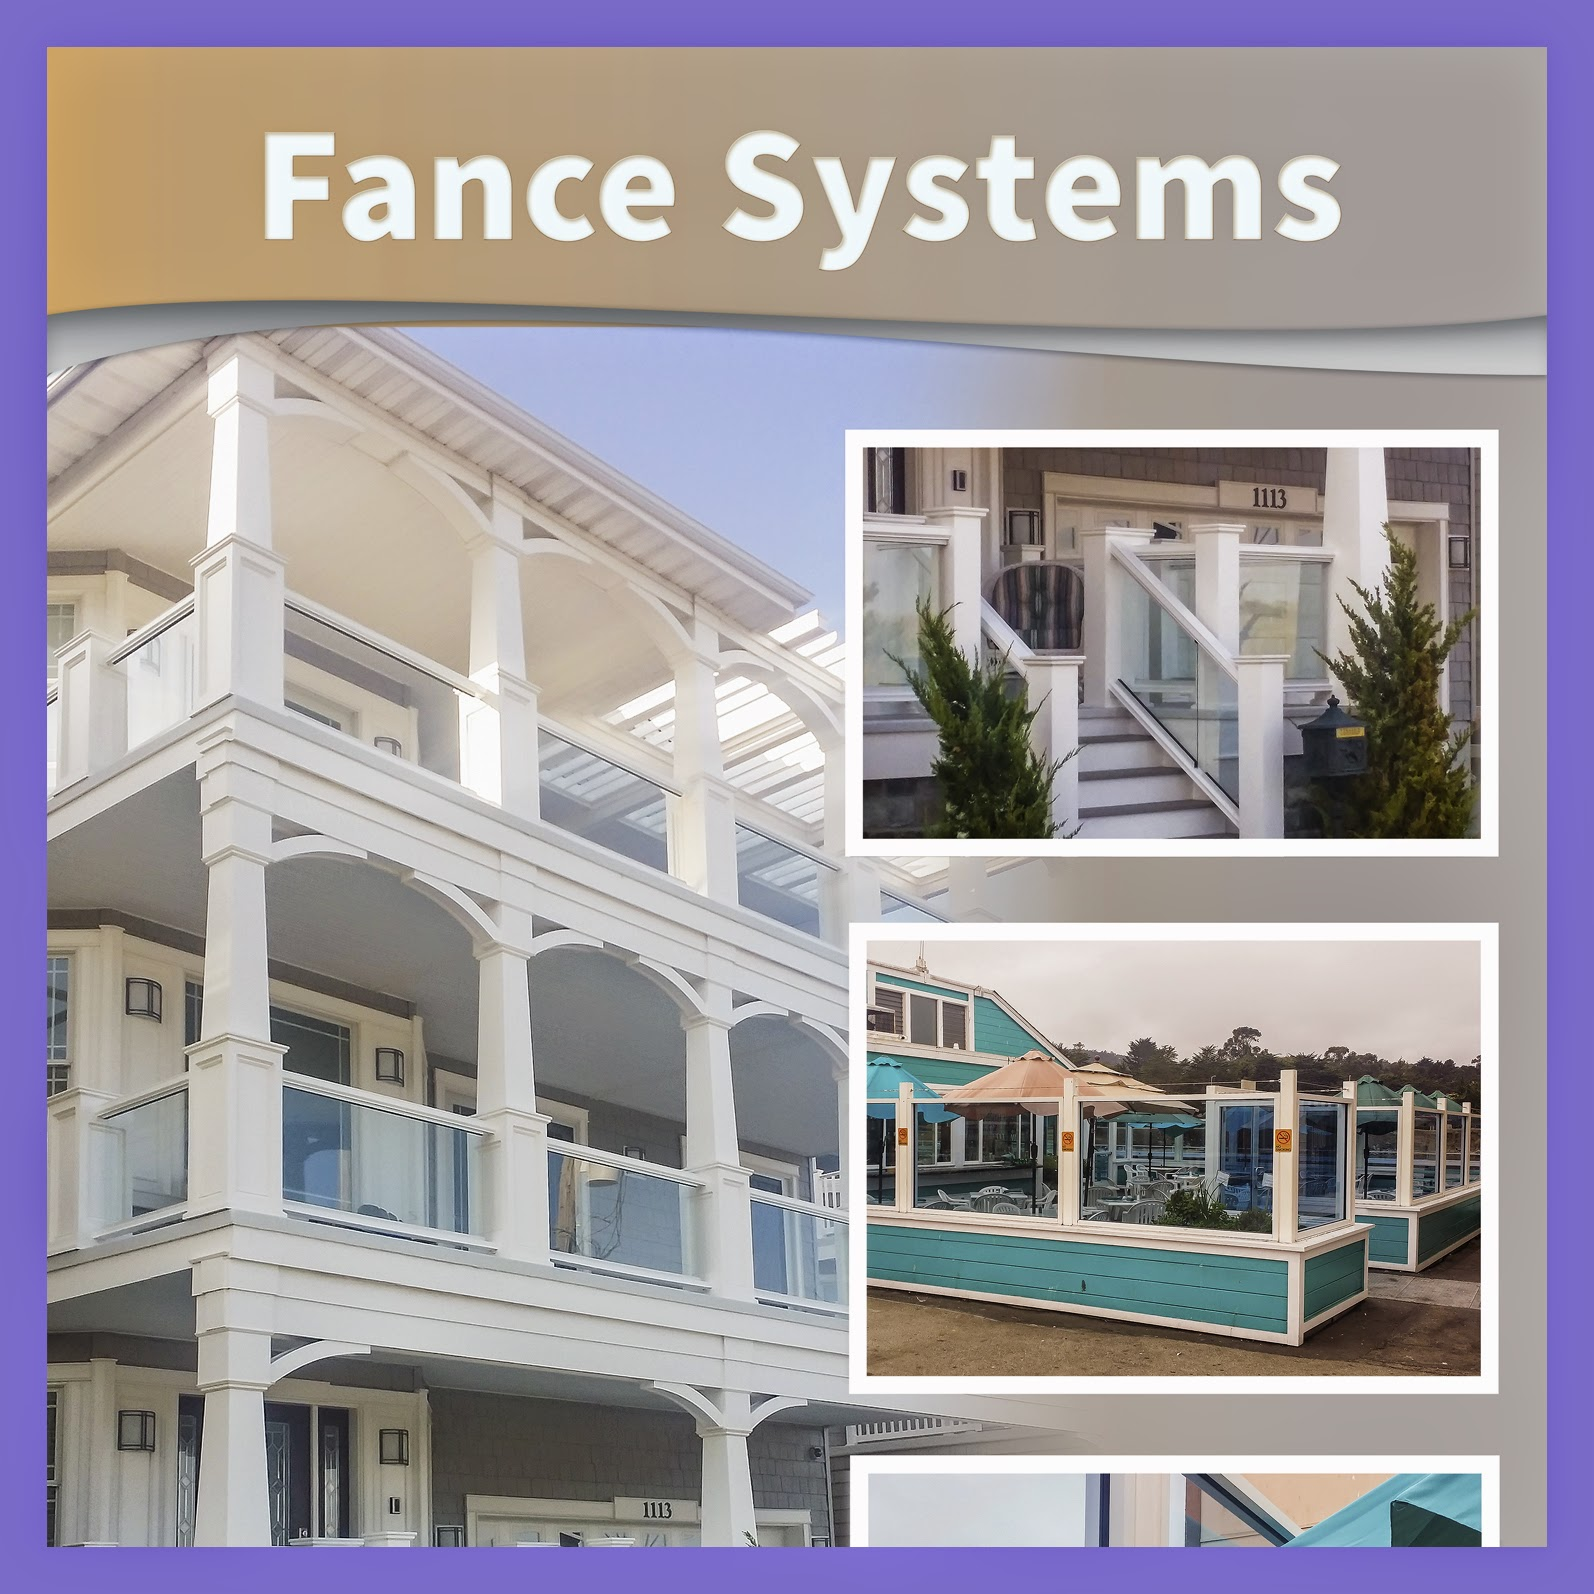 Fance Systems